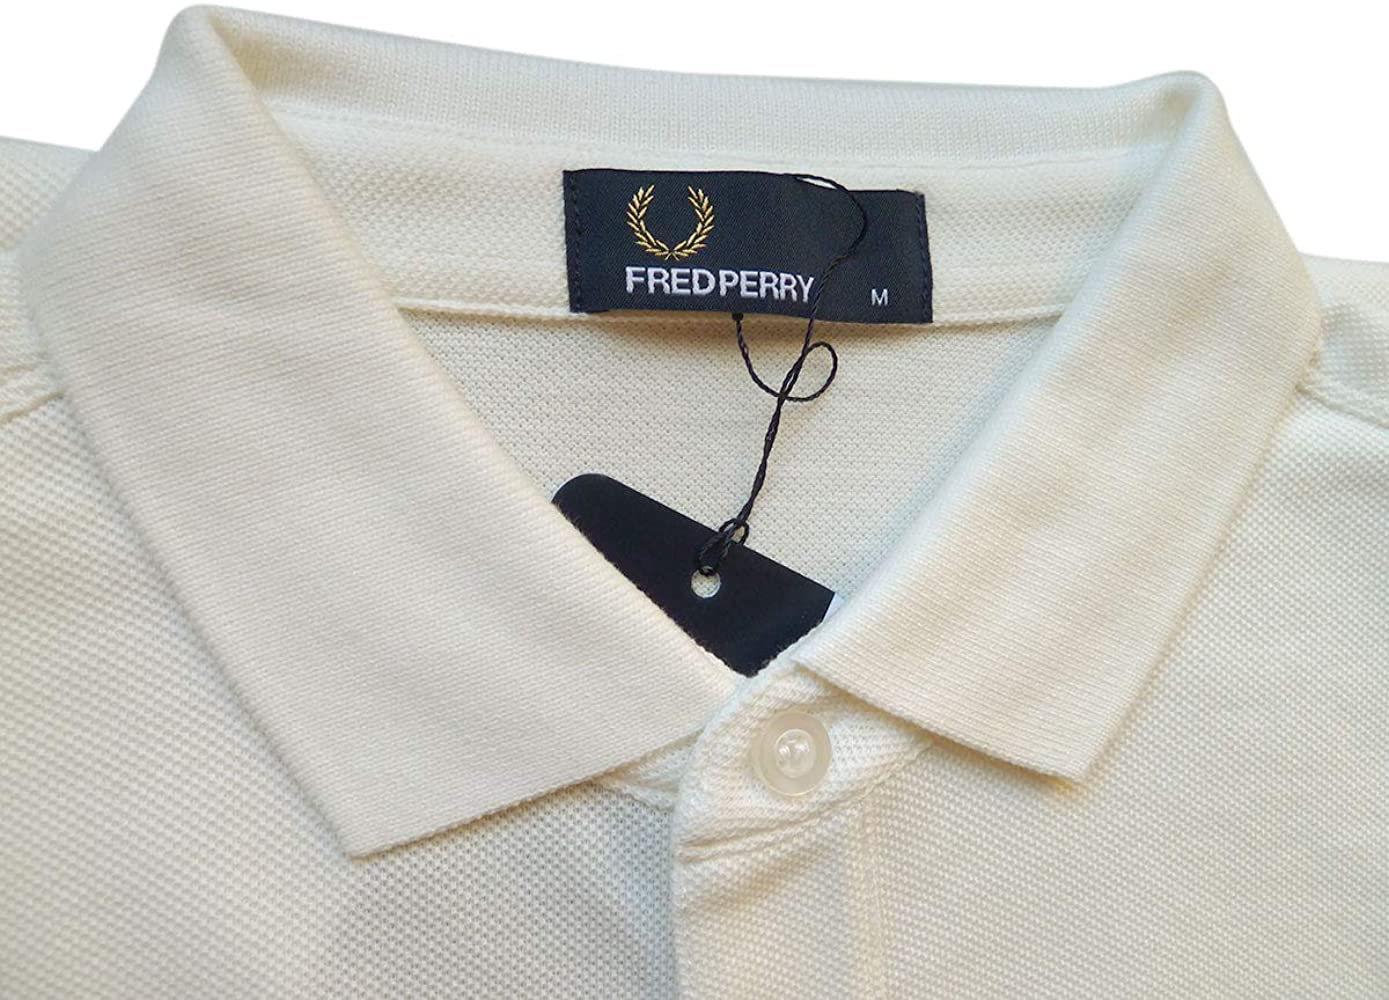 Fred Perry Polo Manga a Rayas Talla M: Amazon.es: Ropa y accesorios